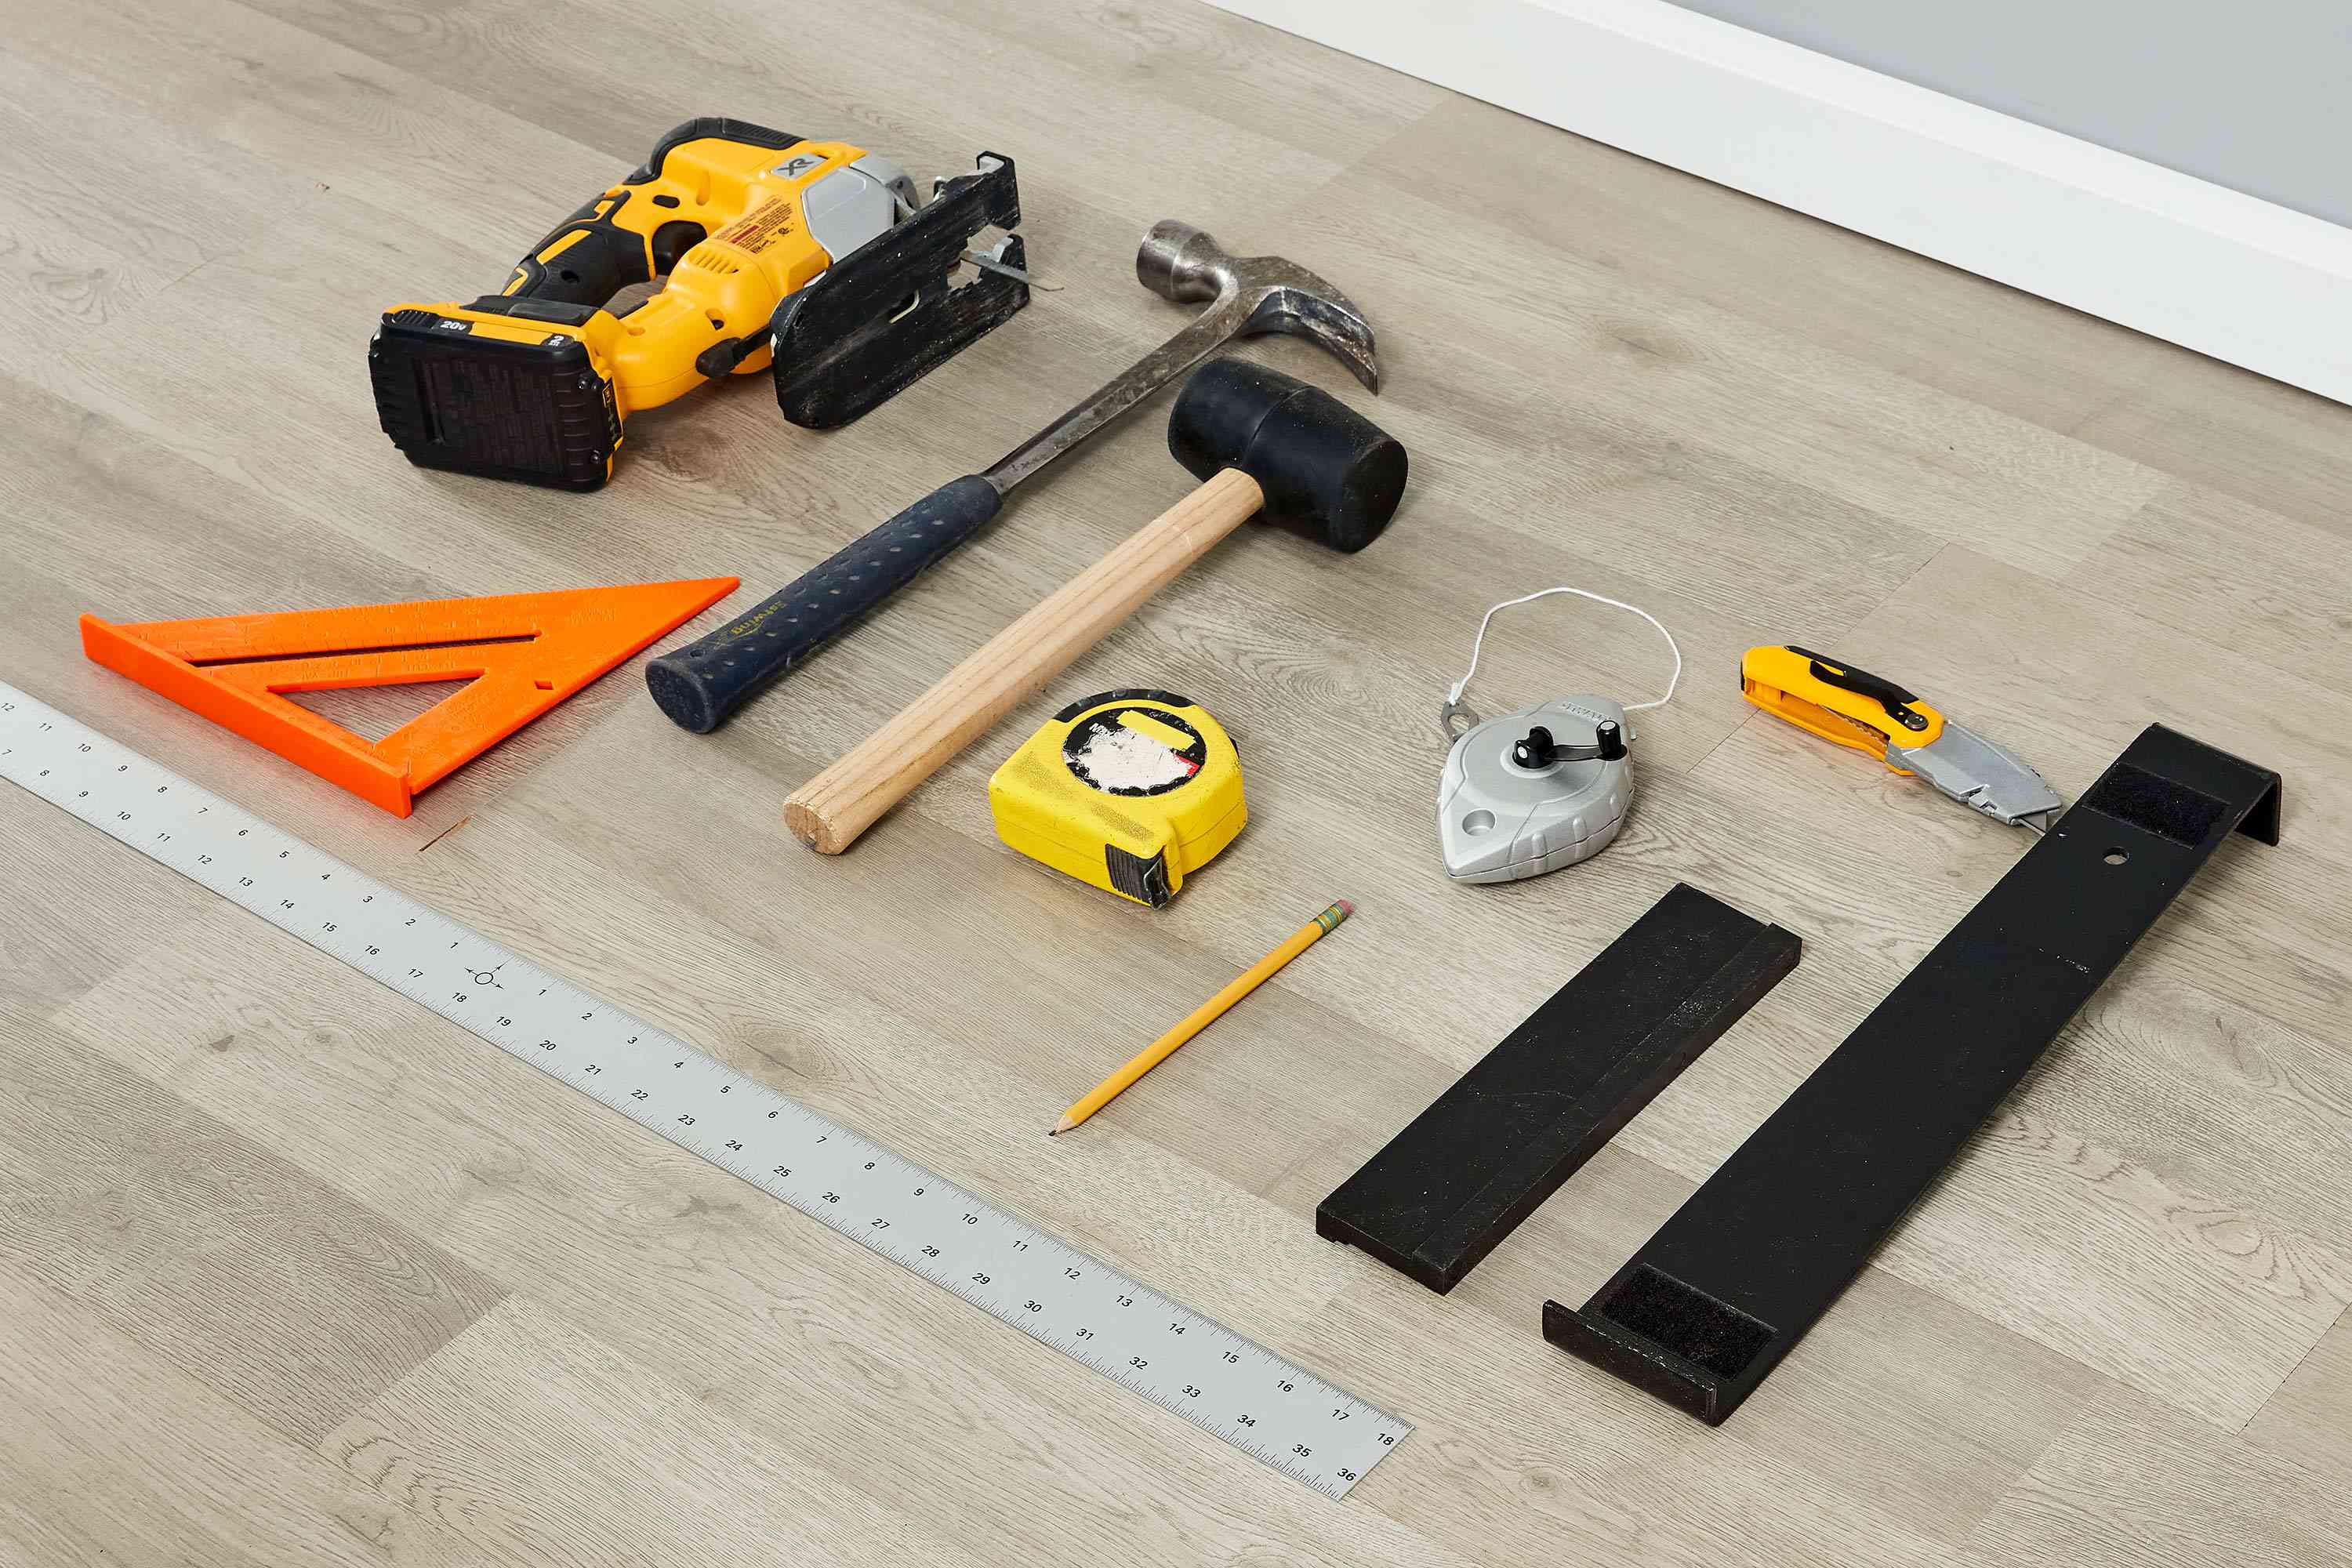 How To Install Laminate Flooring, What Supplies Are Needed To Install Laminate Flooring